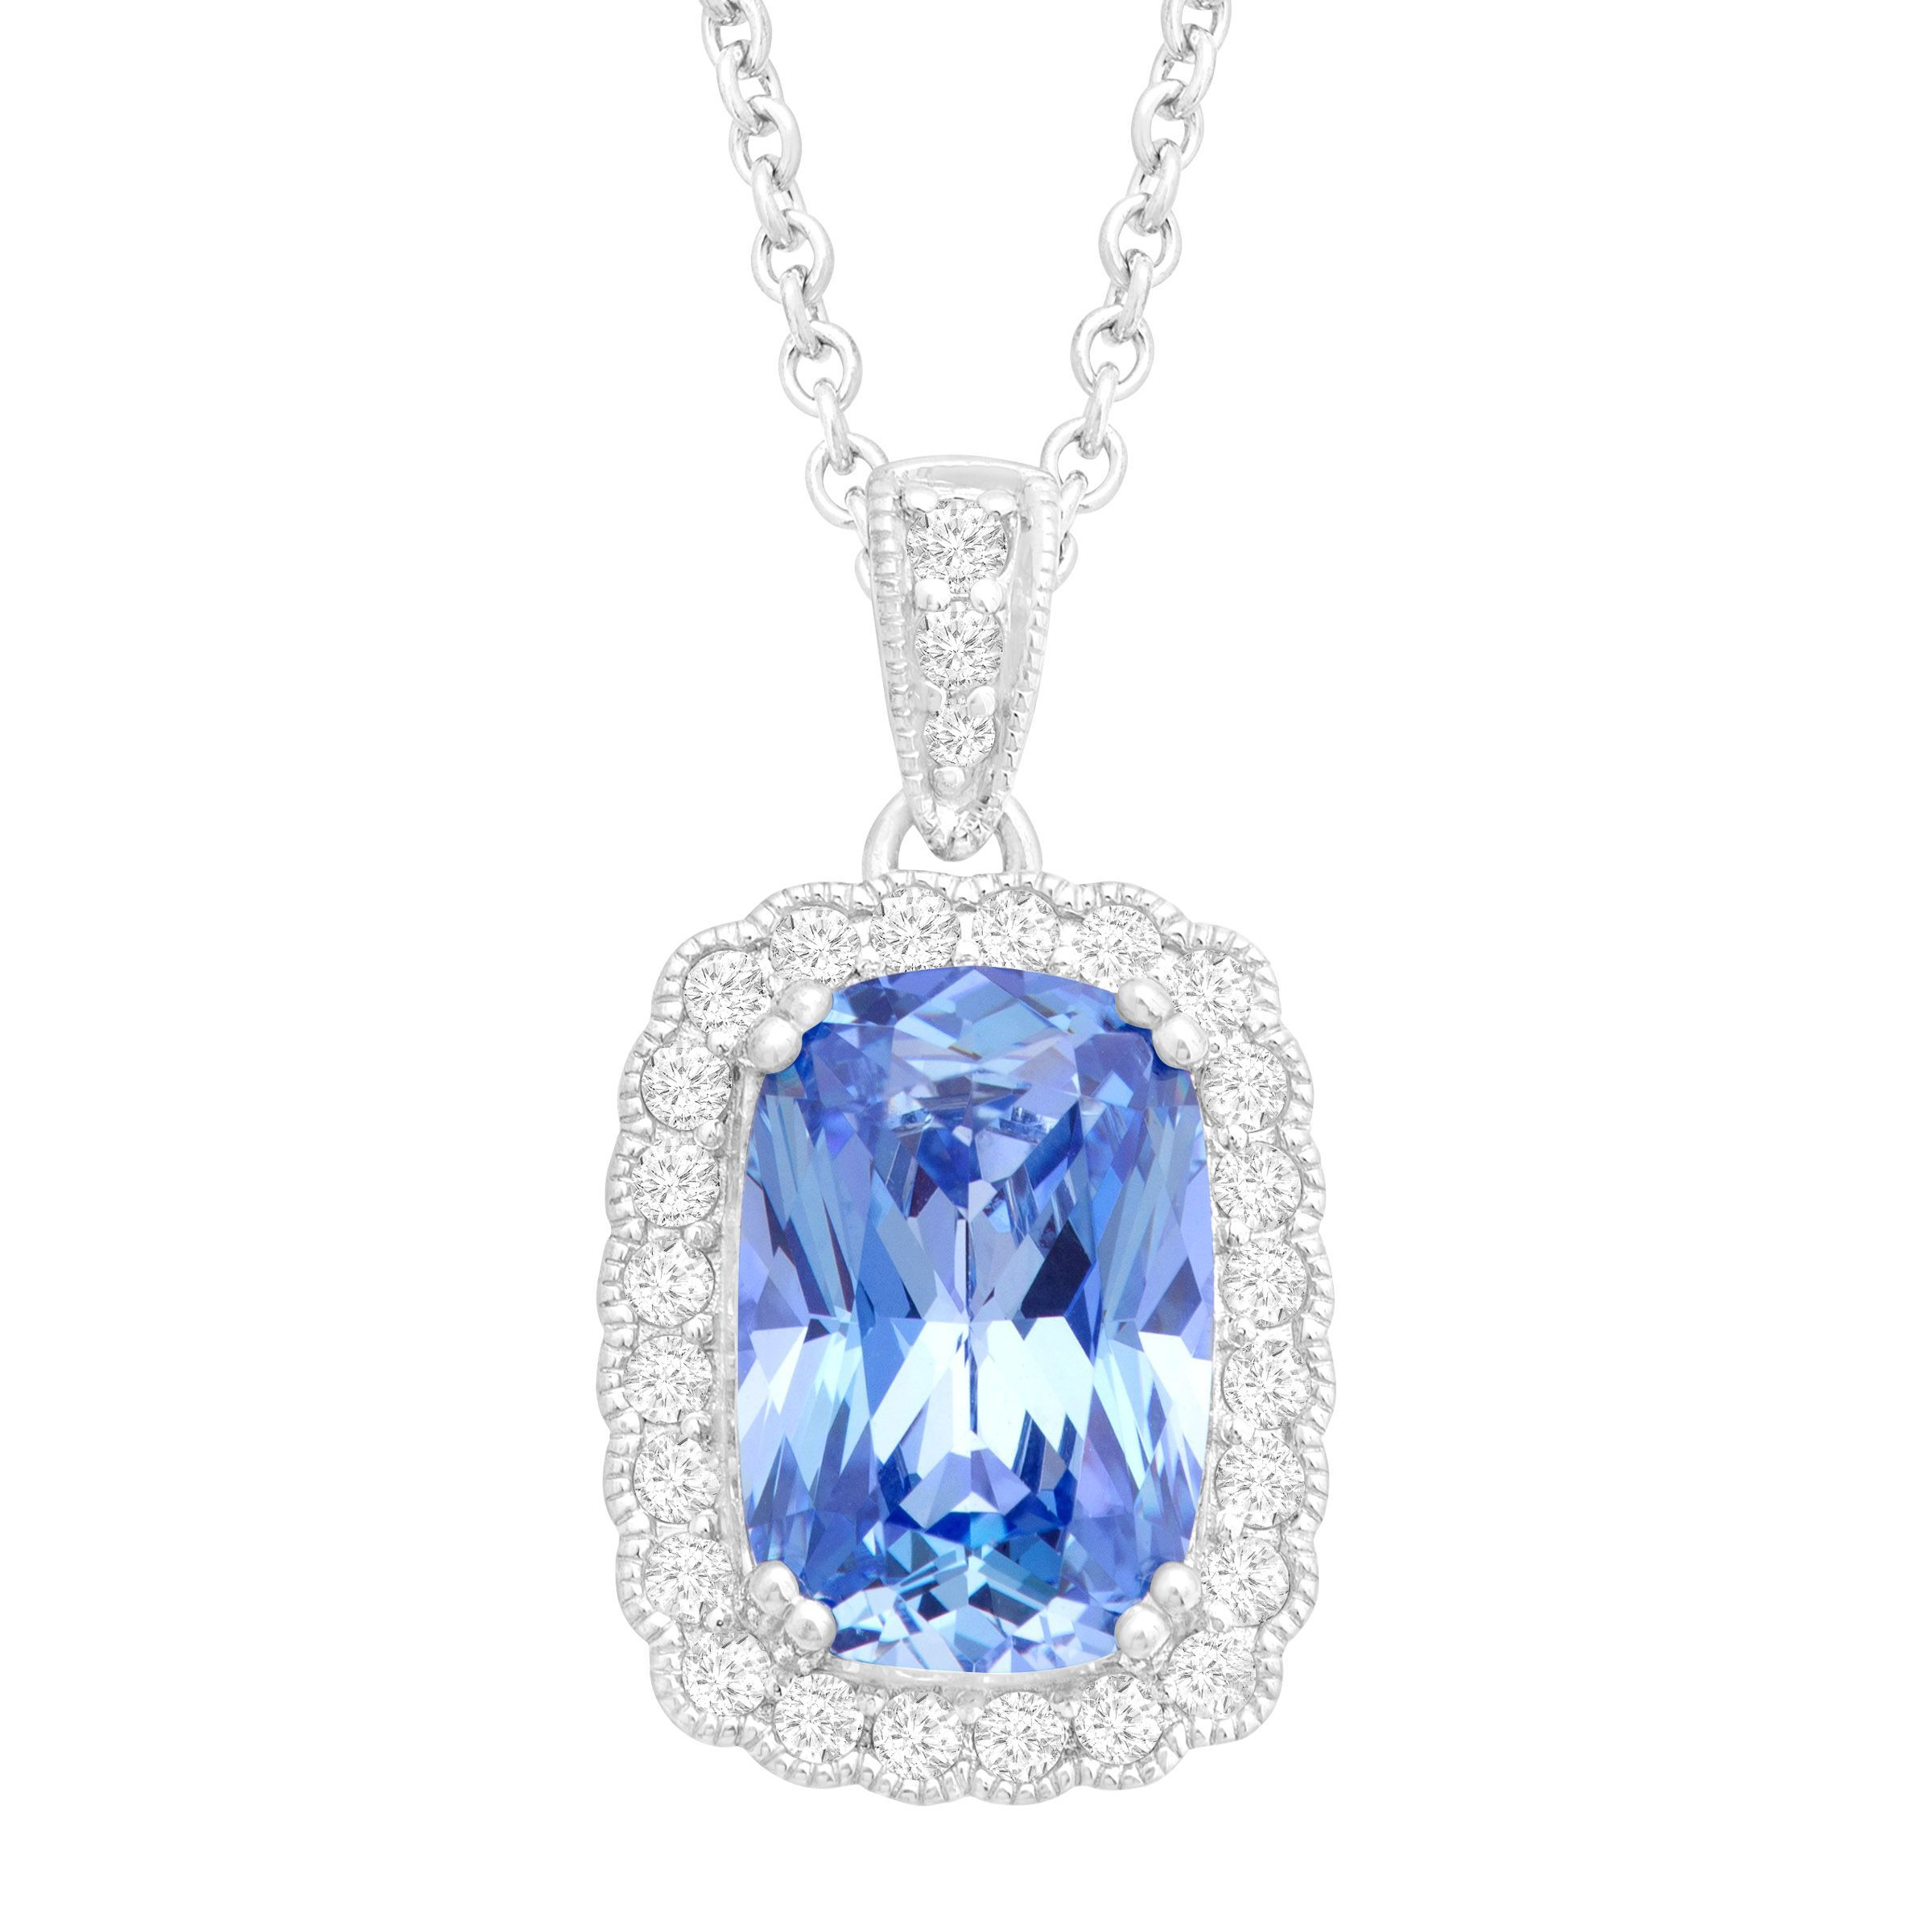 oval preciosa silver with pendant crystal dfbb clay chatons buy by blue princess necklace in scottish products